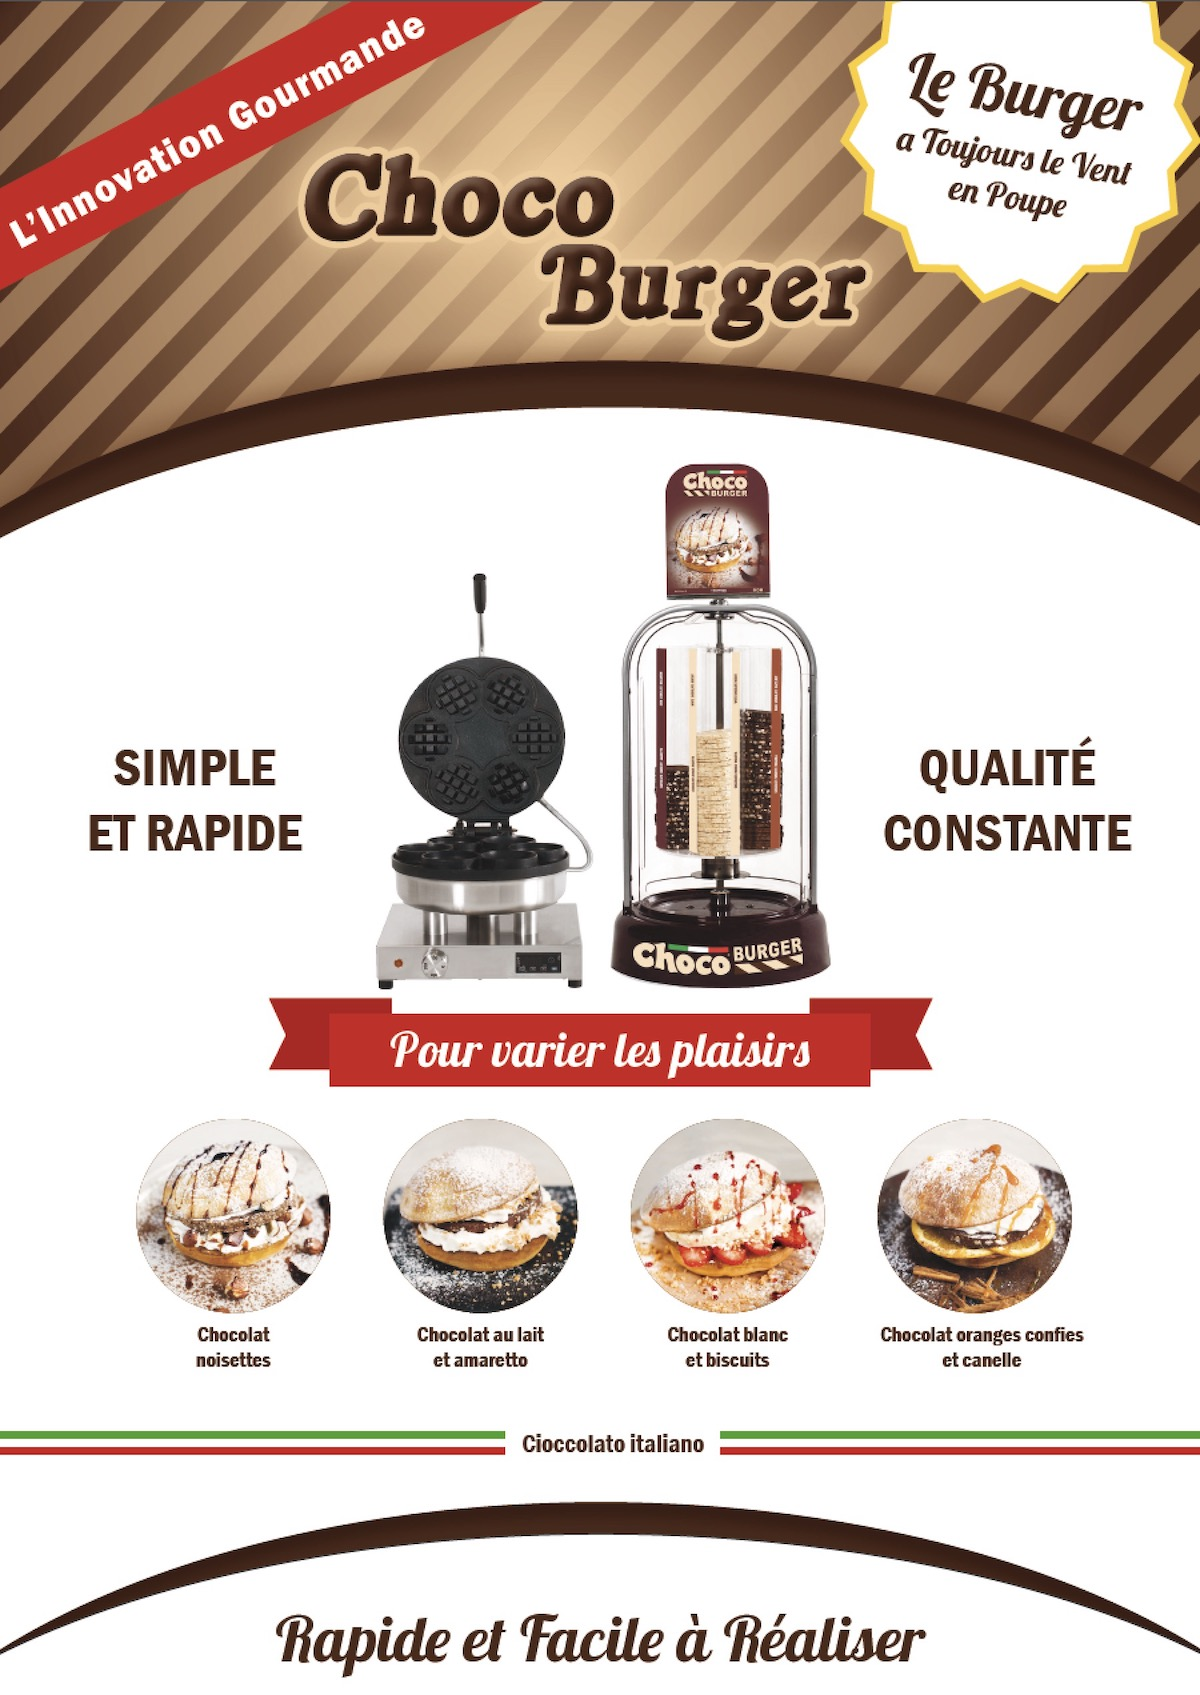 Chocoburger le concept